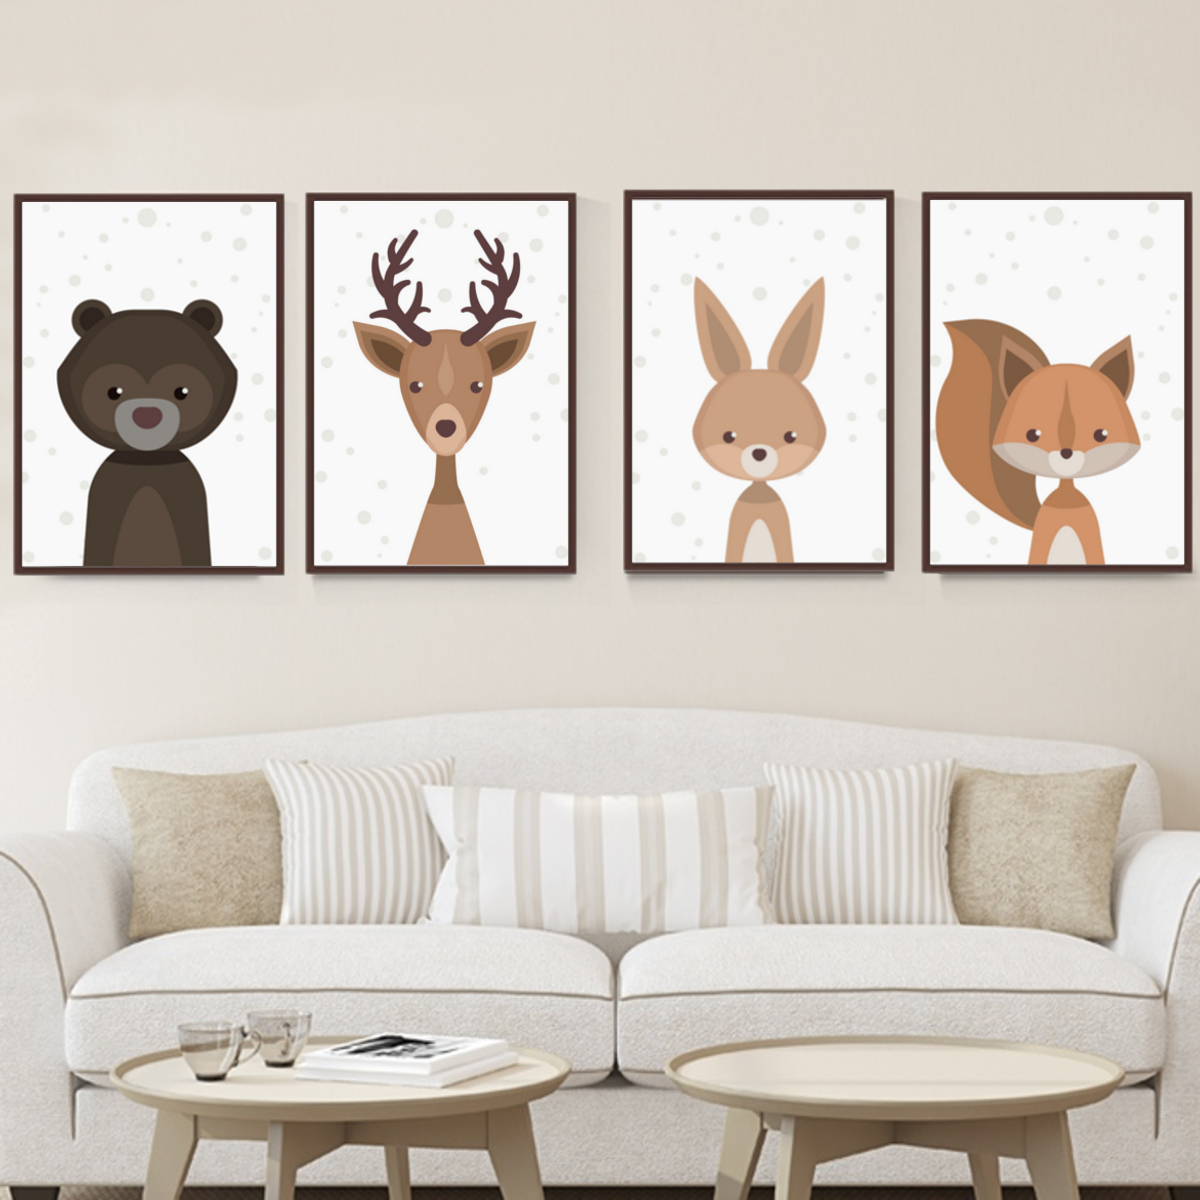 Details about Cartoon Fox Animal Canvas Poster Nordic Art Prints Baby Kids  Room Wall Decor